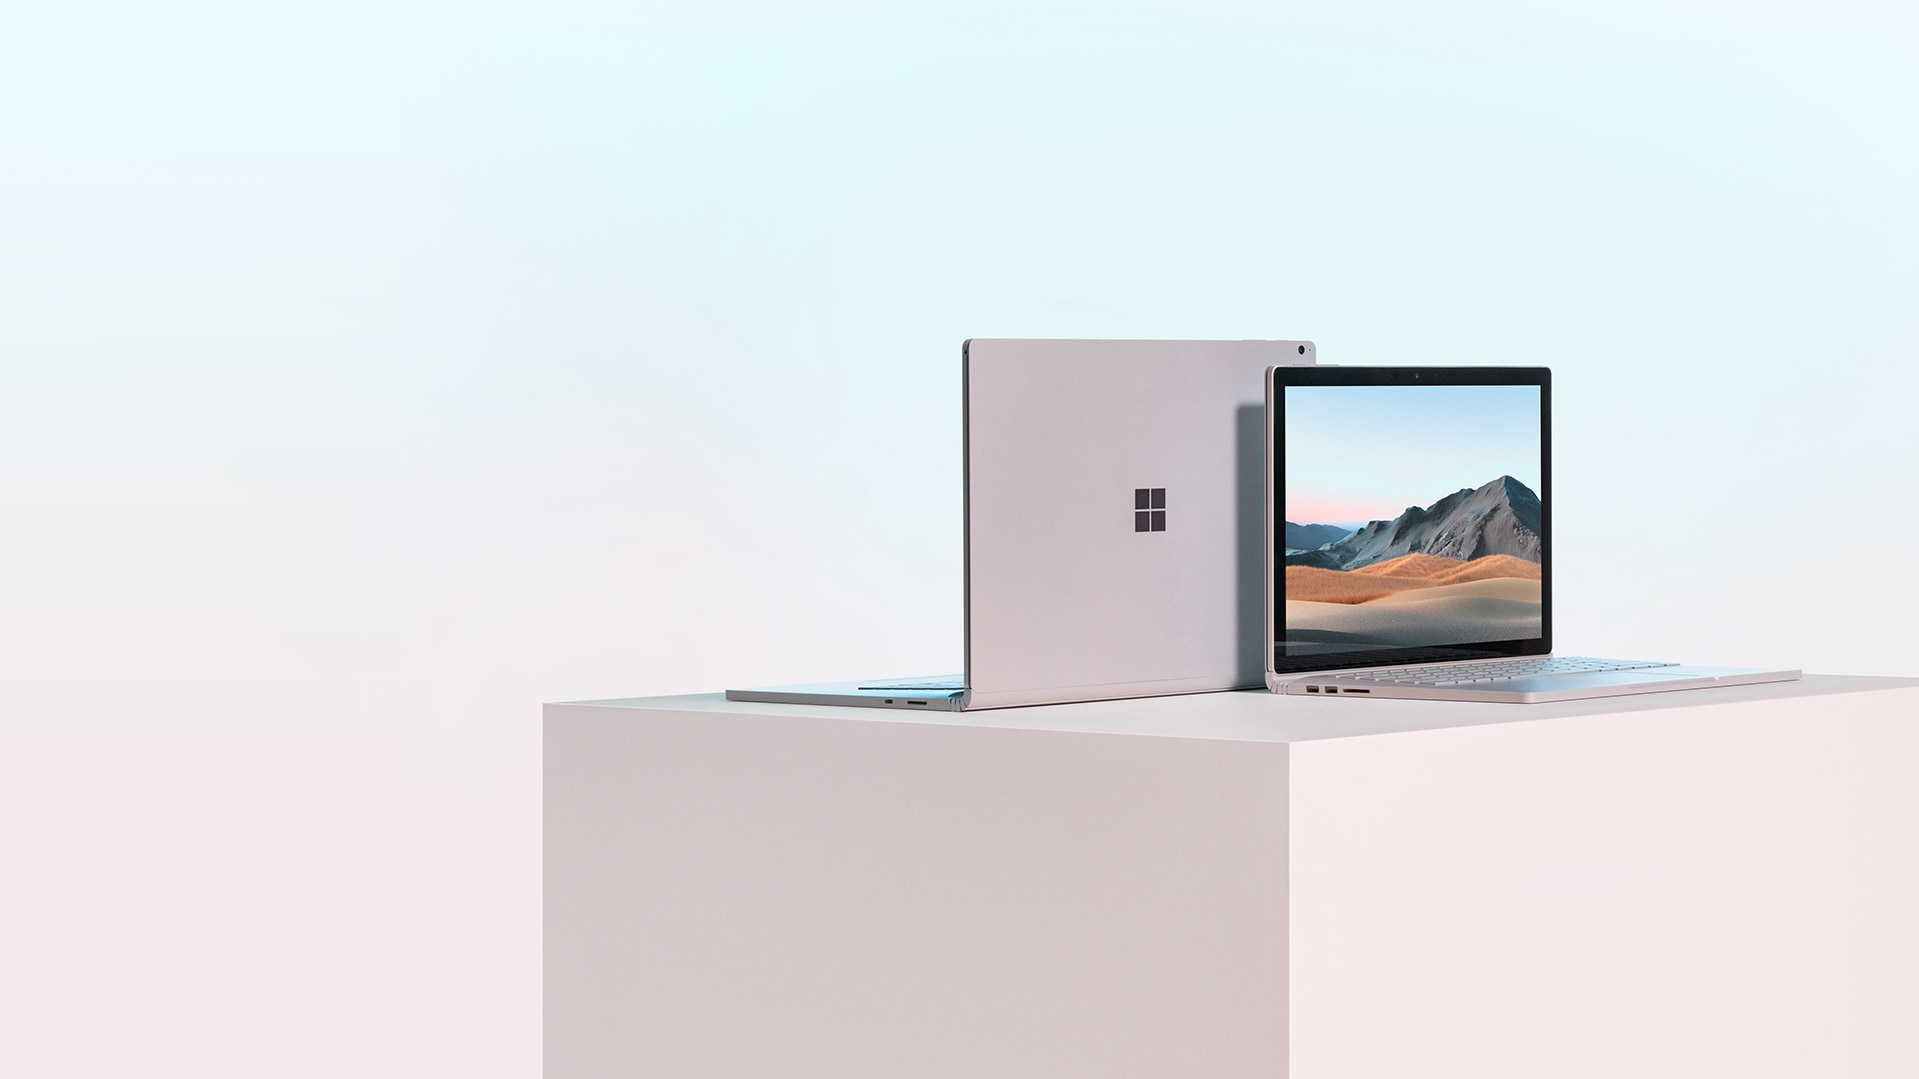 Front and rear view of two Surface Book 3 for Business devices with lids open on tabletop, one showing screen